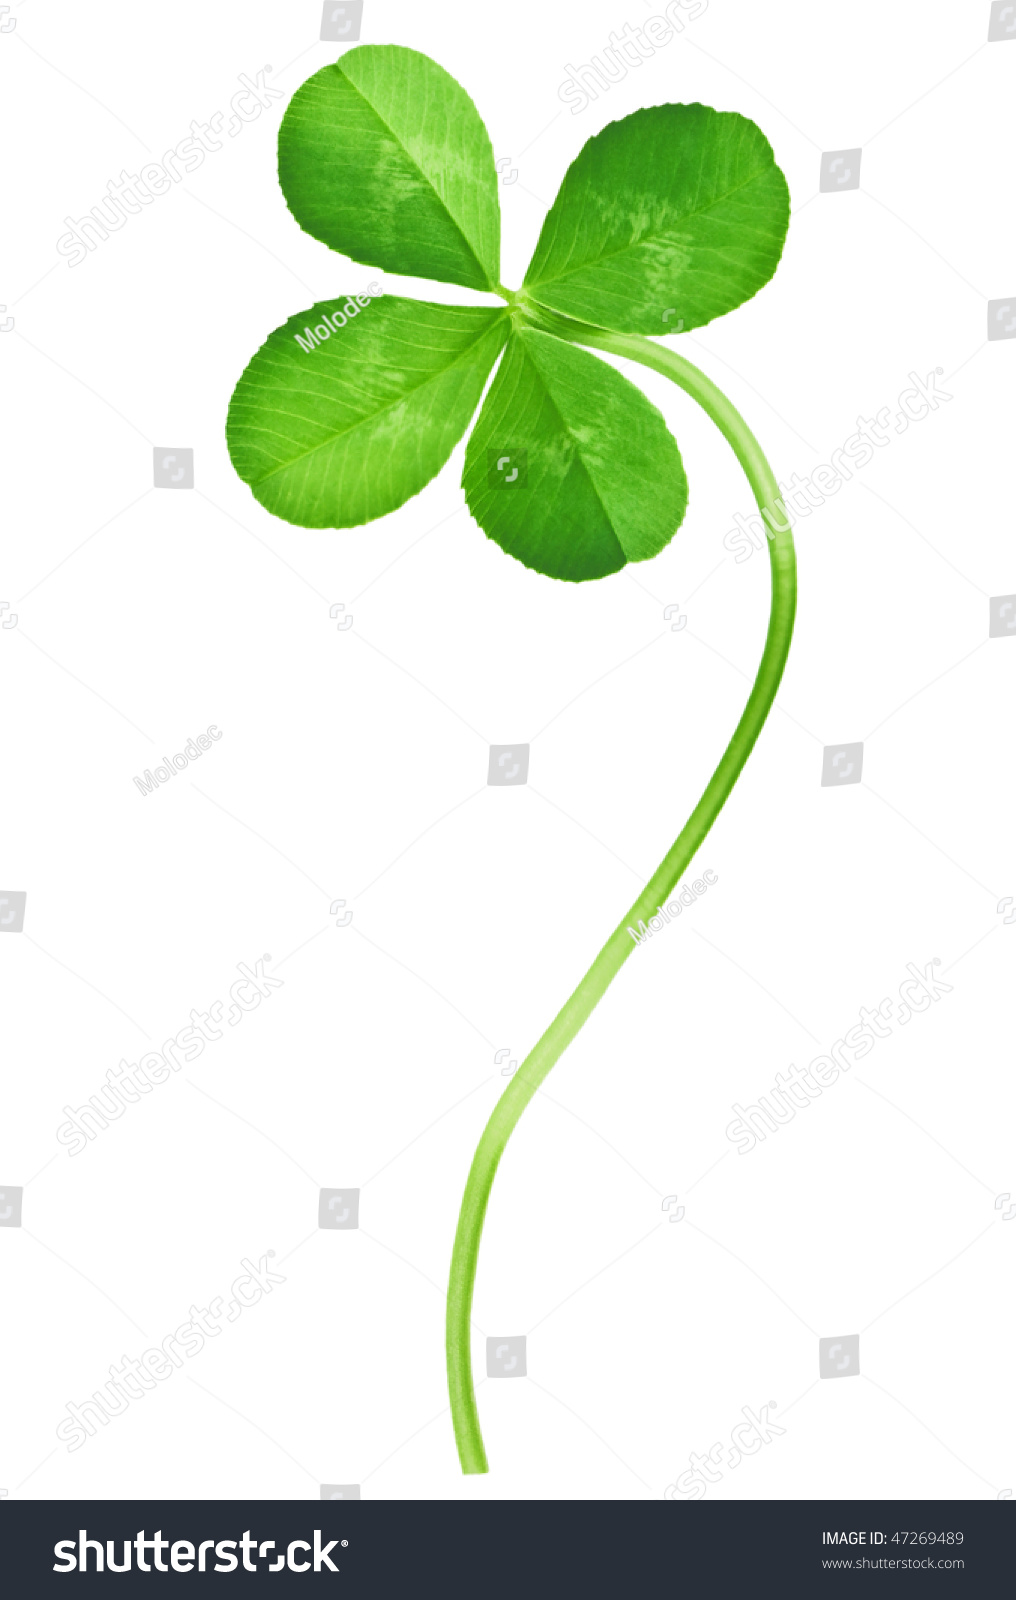 four leaf clover isolated on white stock photo 47269489 shutterstock